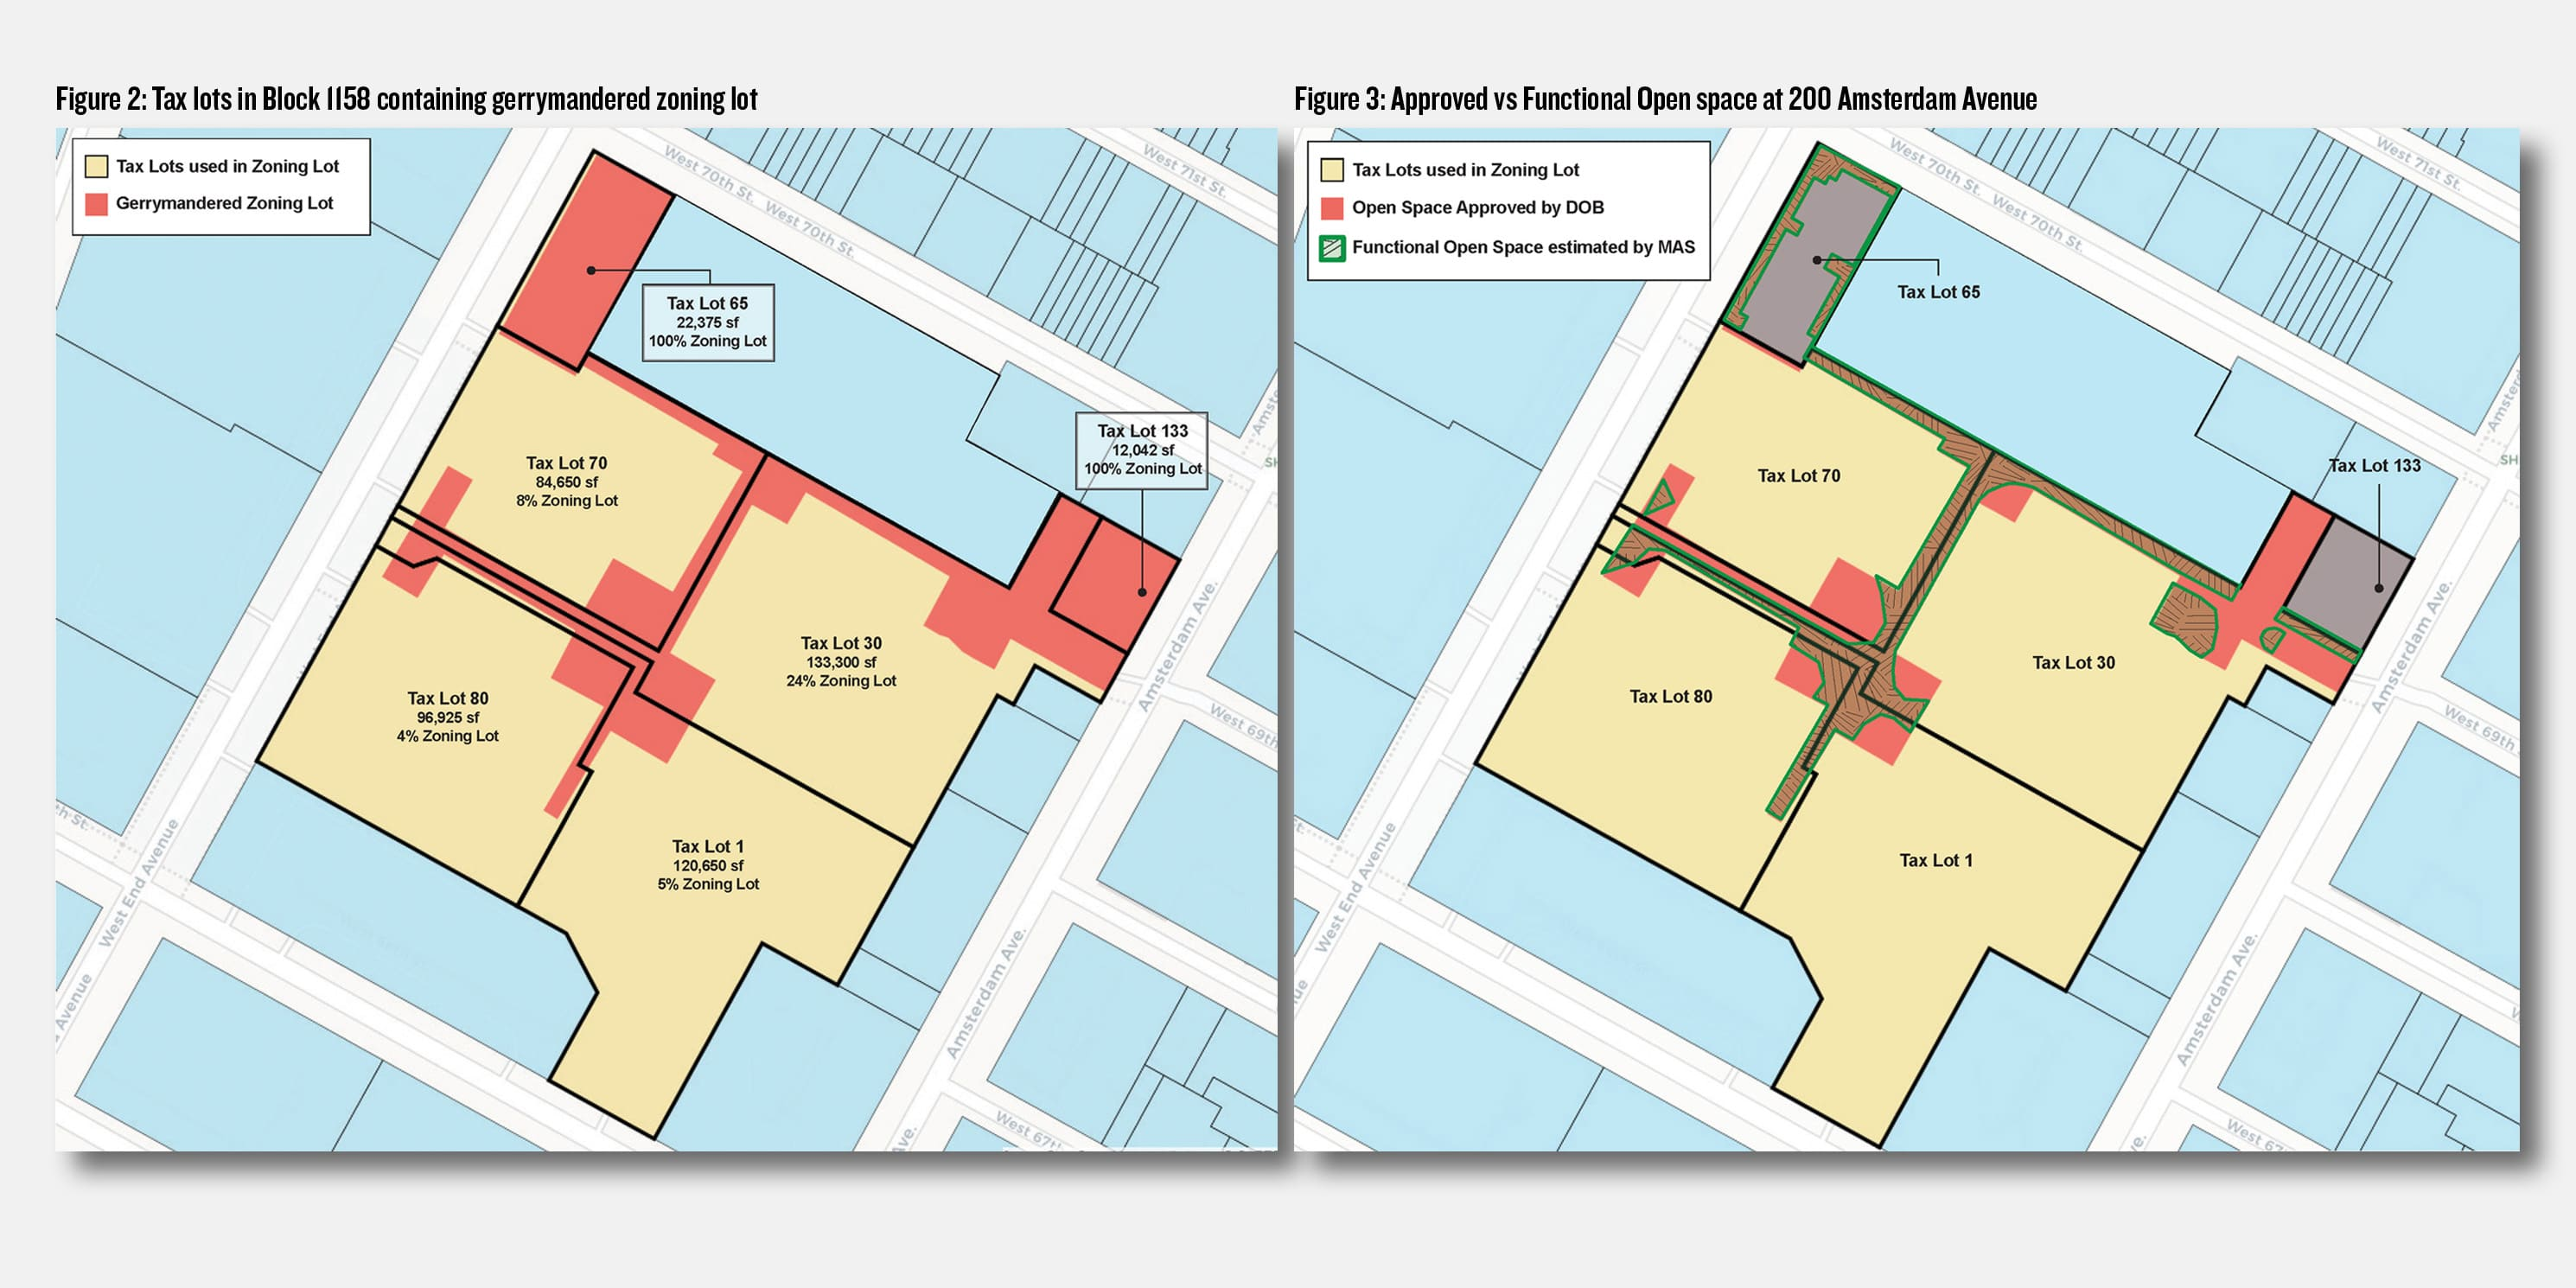 Map of the gerrymandered zoning lot and proposed tower at 200 Amsterdam Avenue